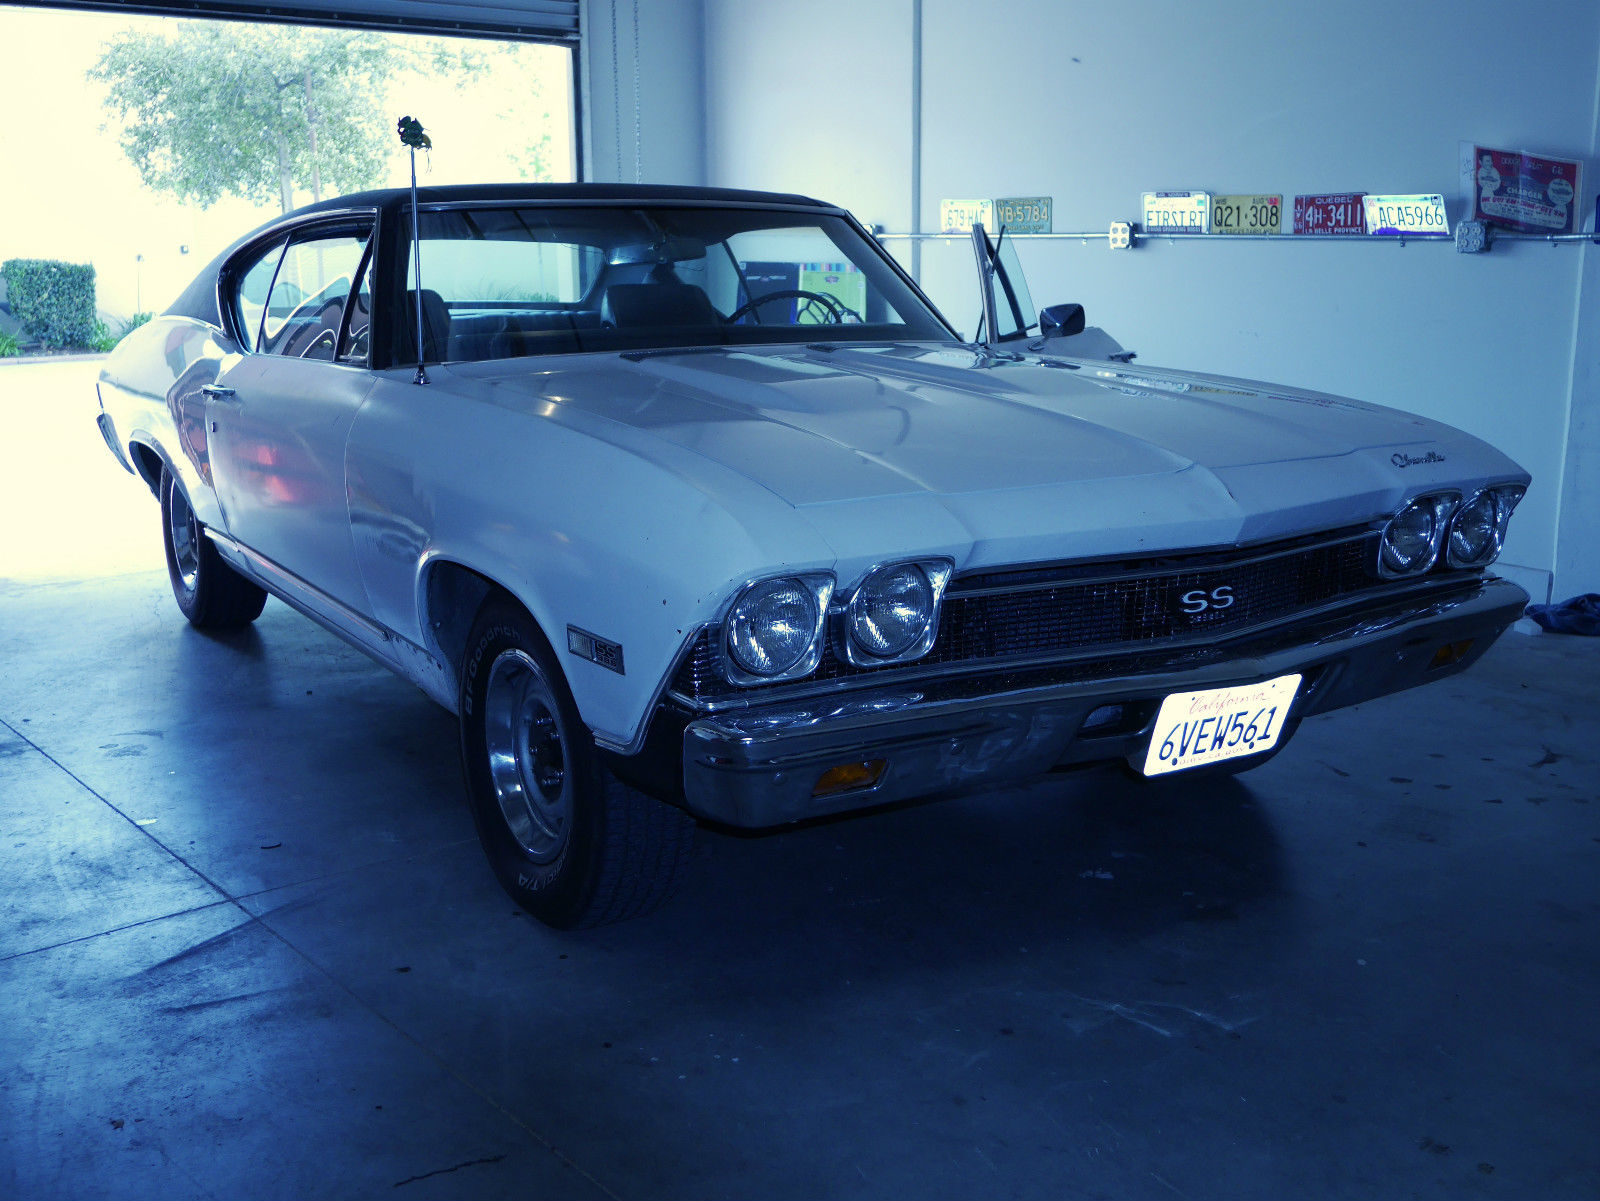 68 Chevelle Ss Auto Numbers Motor A C Pwr Windows Tilt 138